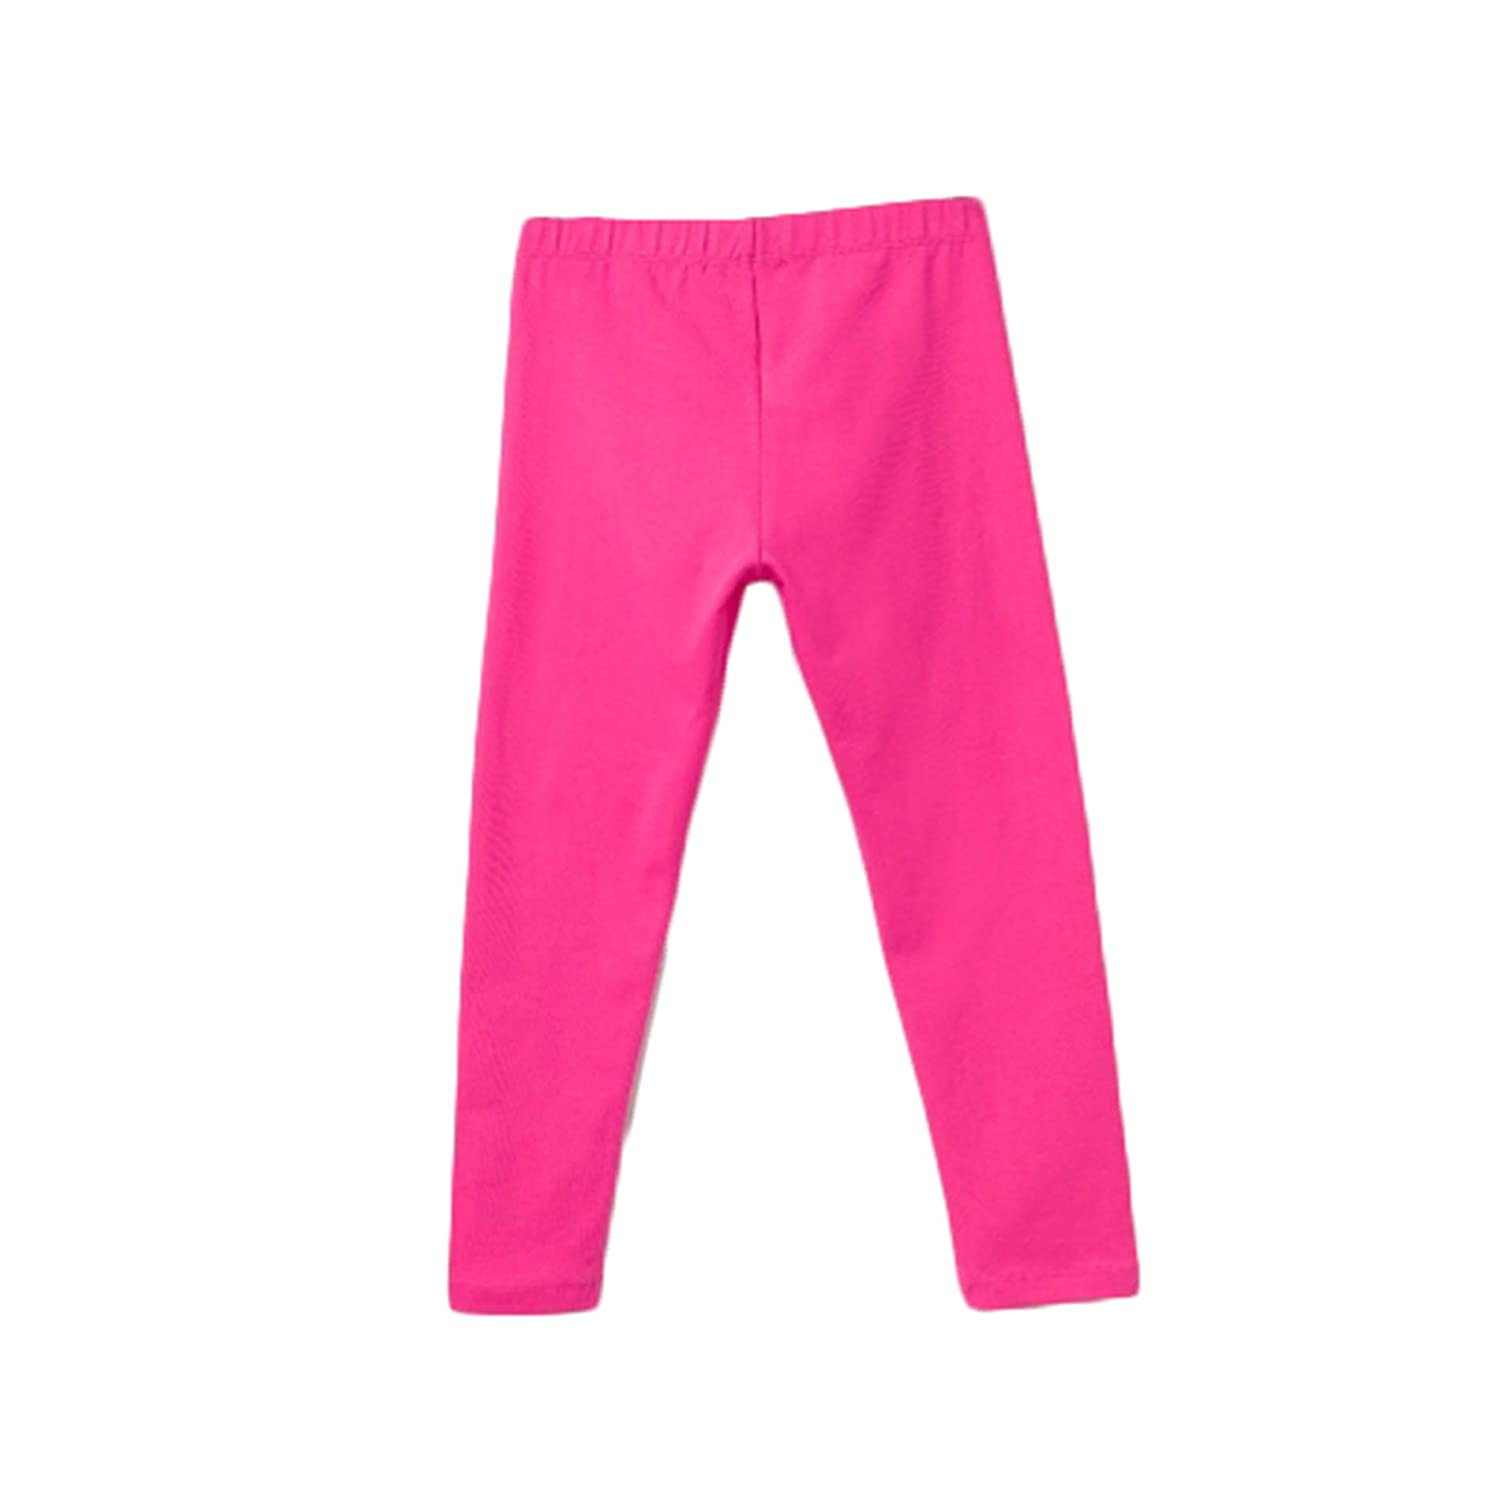 bossini Passionate Festival Girls Solid Leggings Pink,US Size 3t 16